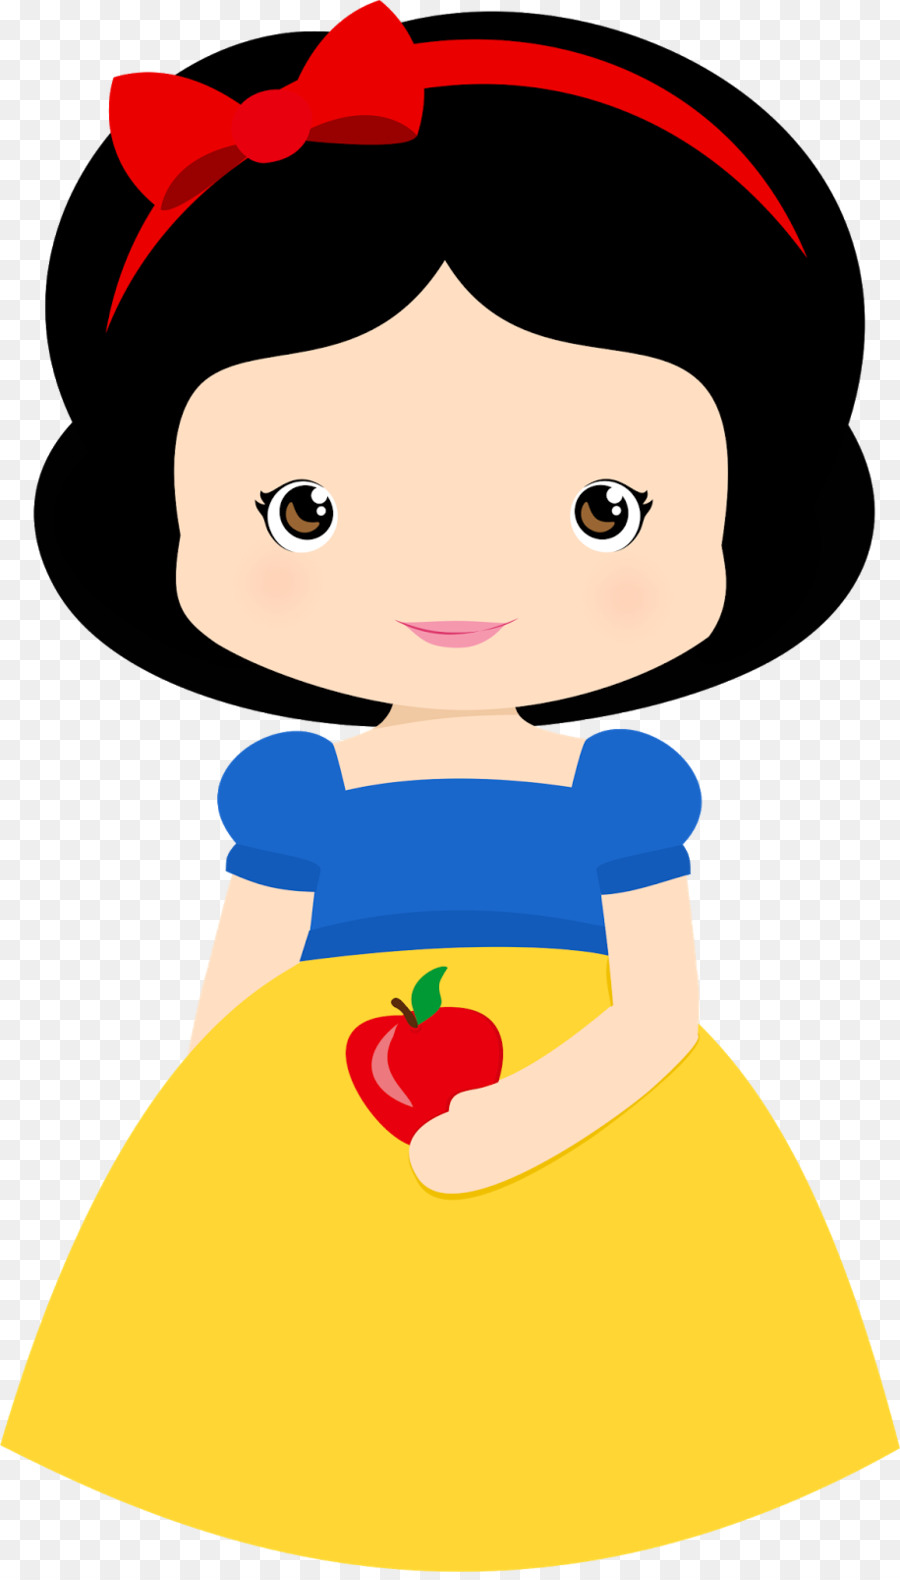 900x1580 Snow White Sneezy Disney Princess Clip Art